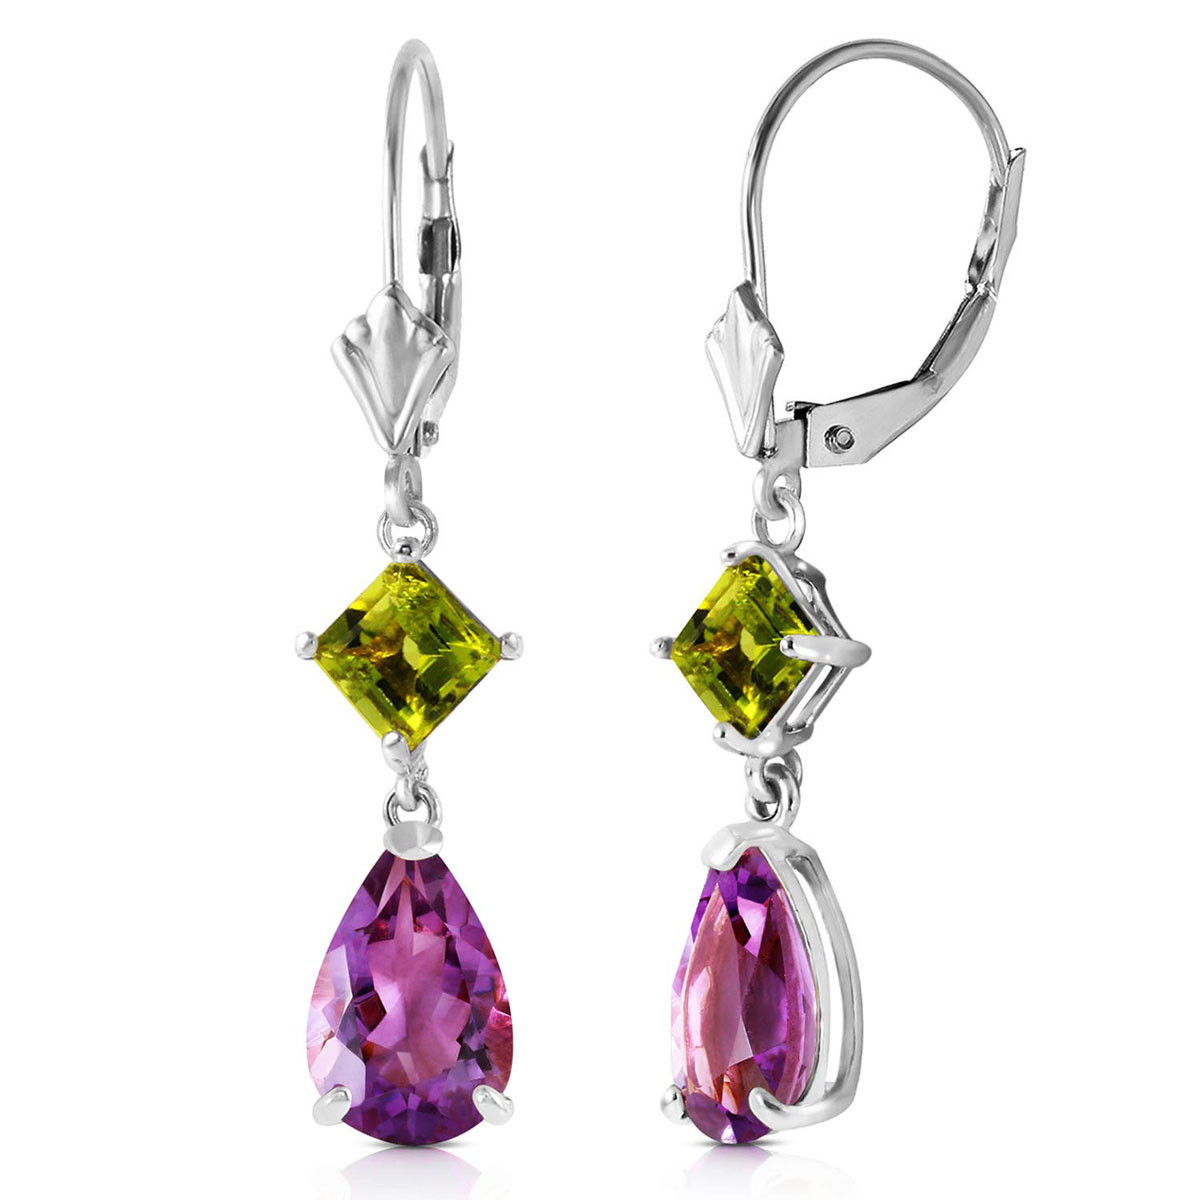 Amethyst & Peridot Droplet Earrings in 9ct White Gold